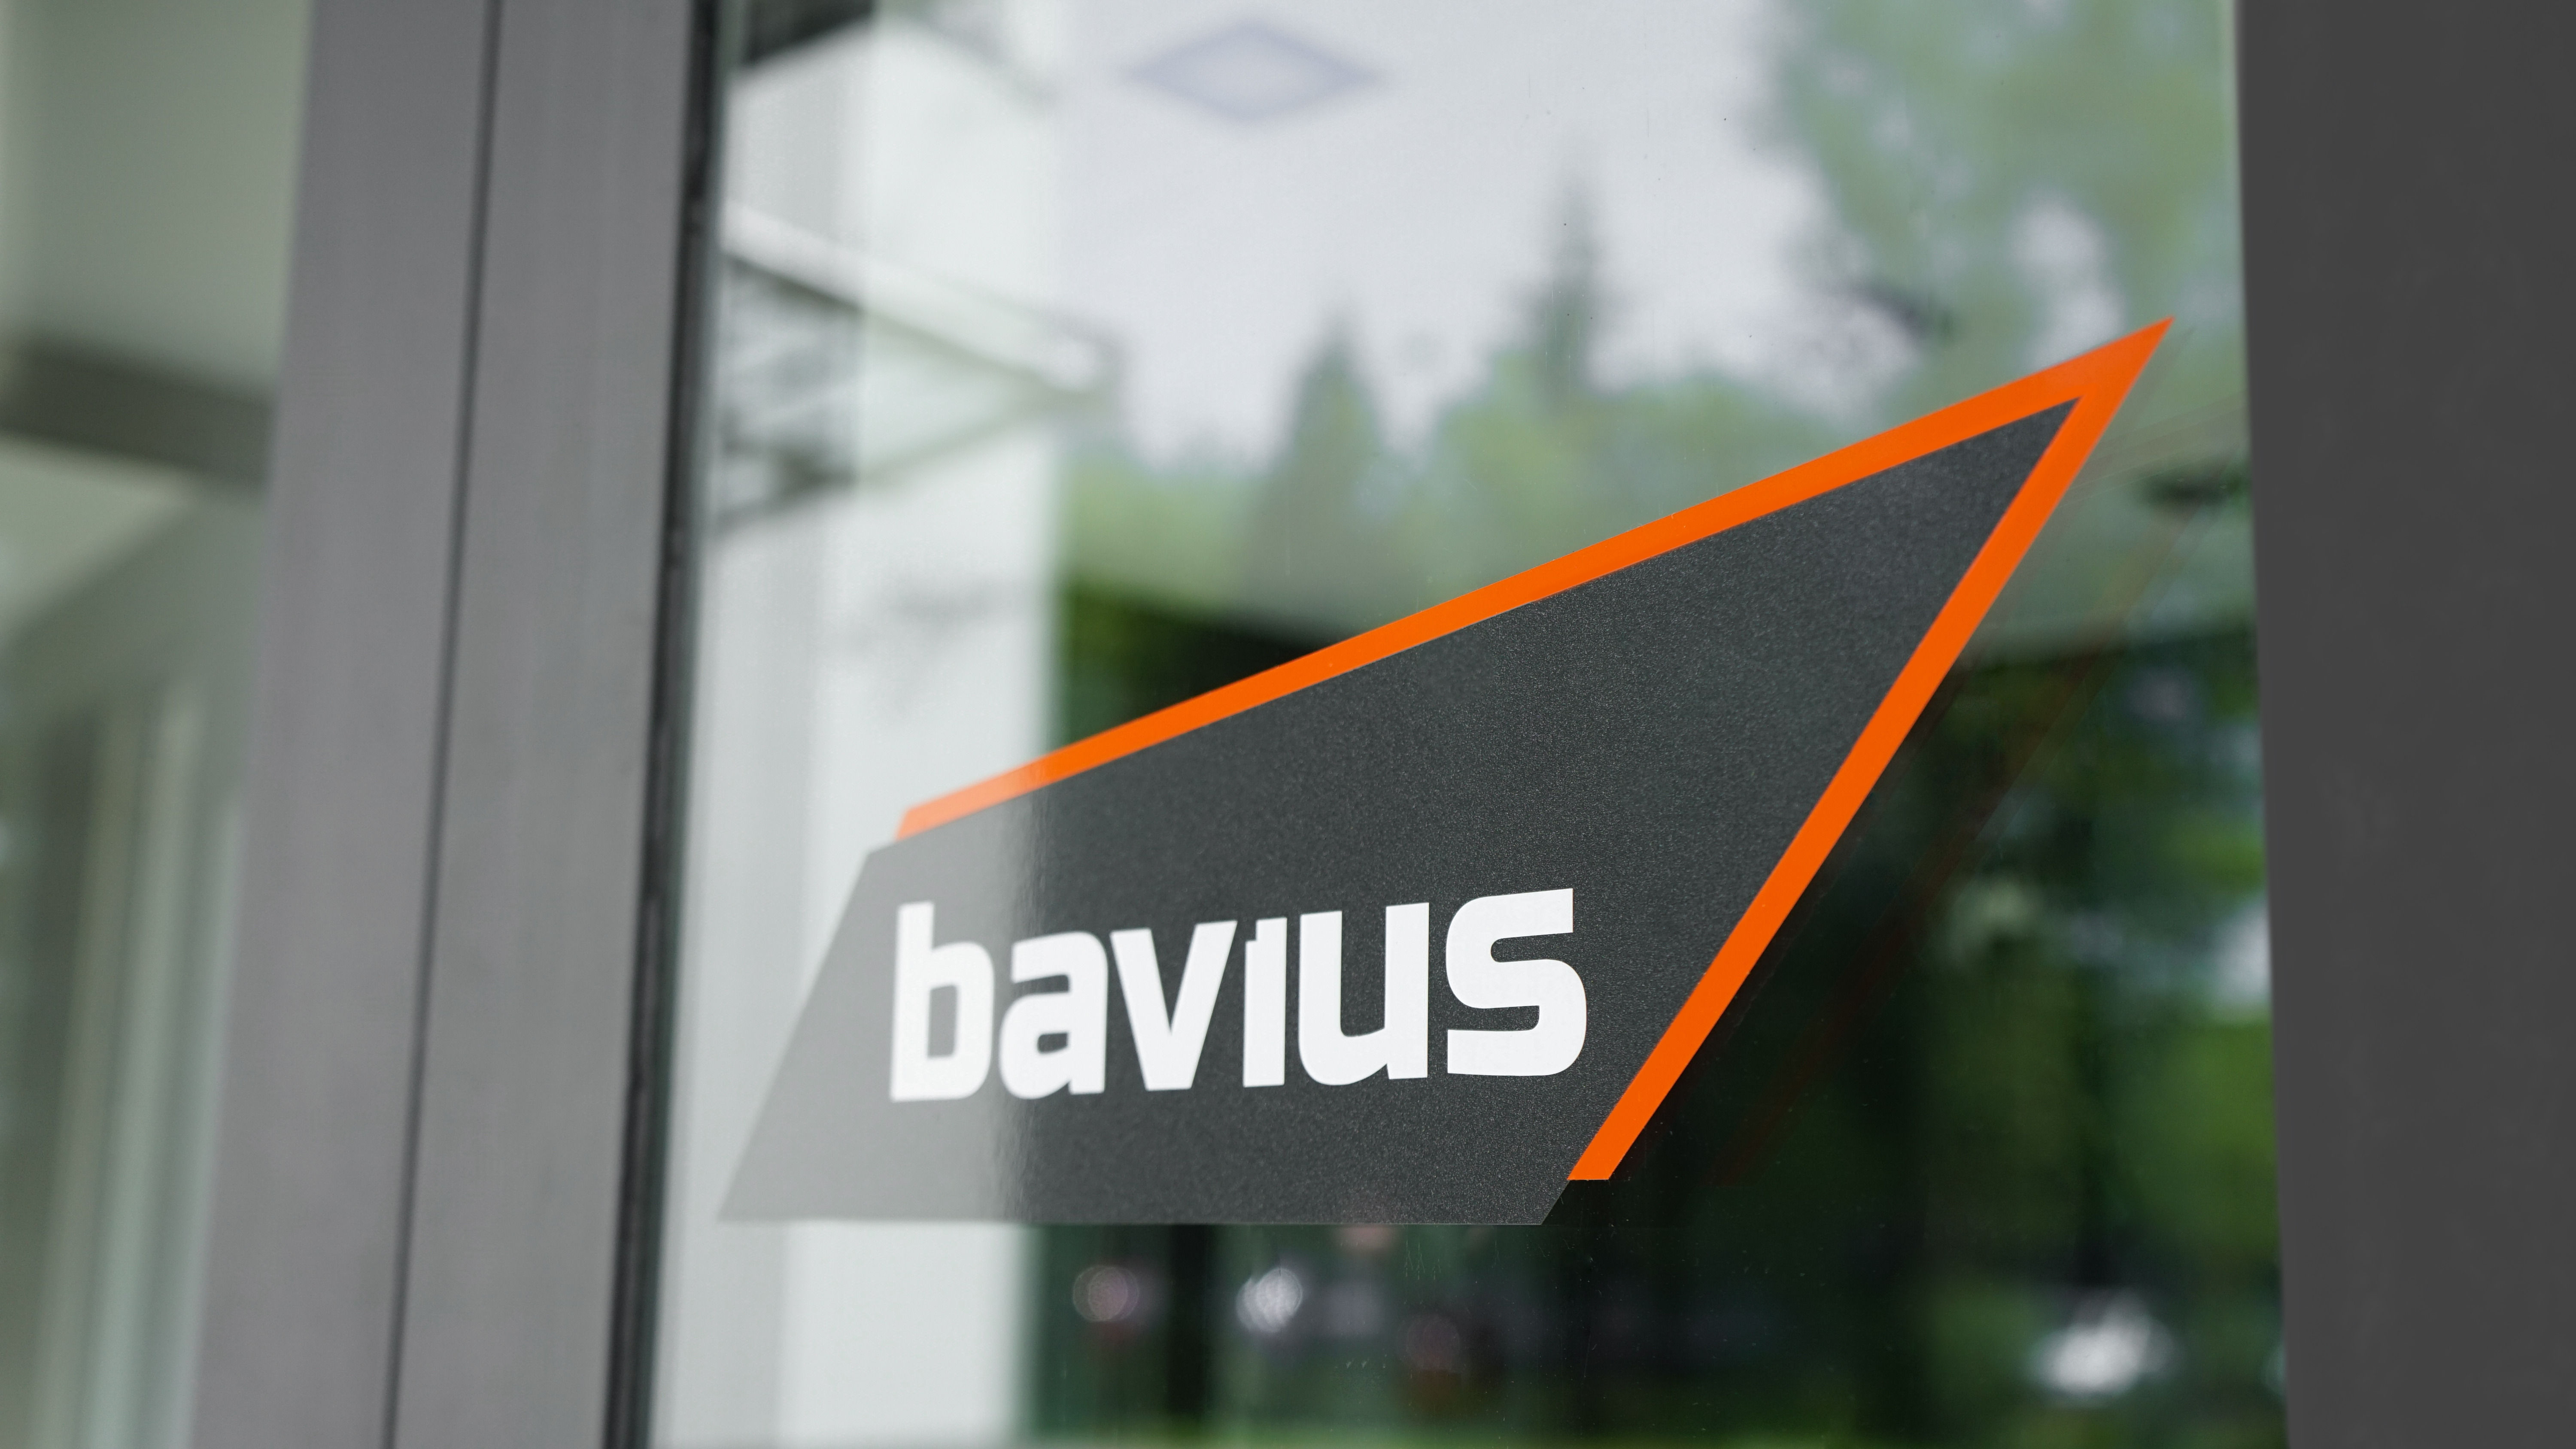 bavius-sign-entrance-1